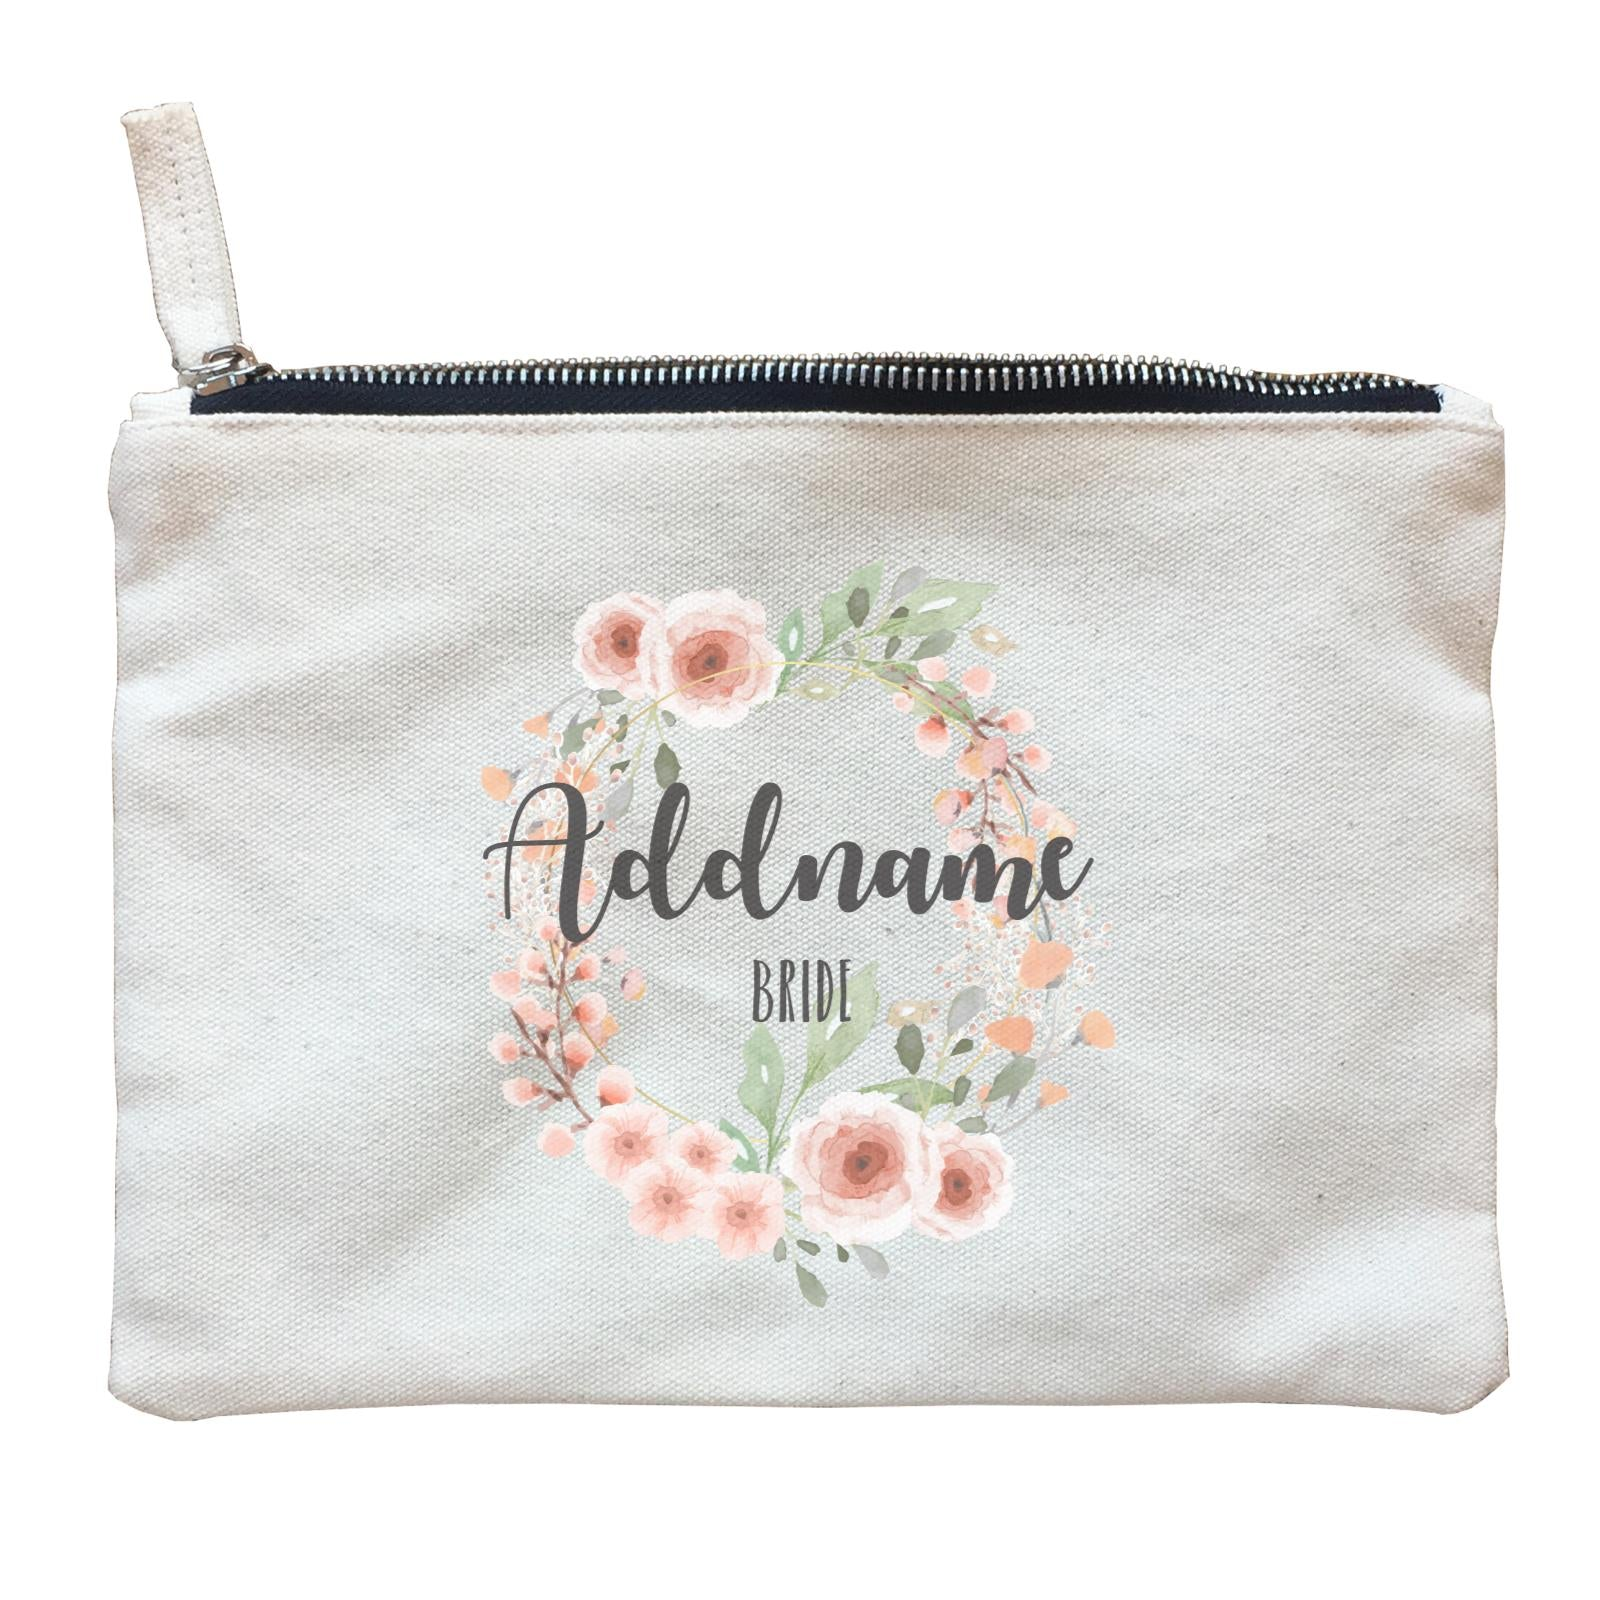 Bridesmaid Floral Sweet 2 Watercolour Flower Wreath Bride Addname Zipper Pouch